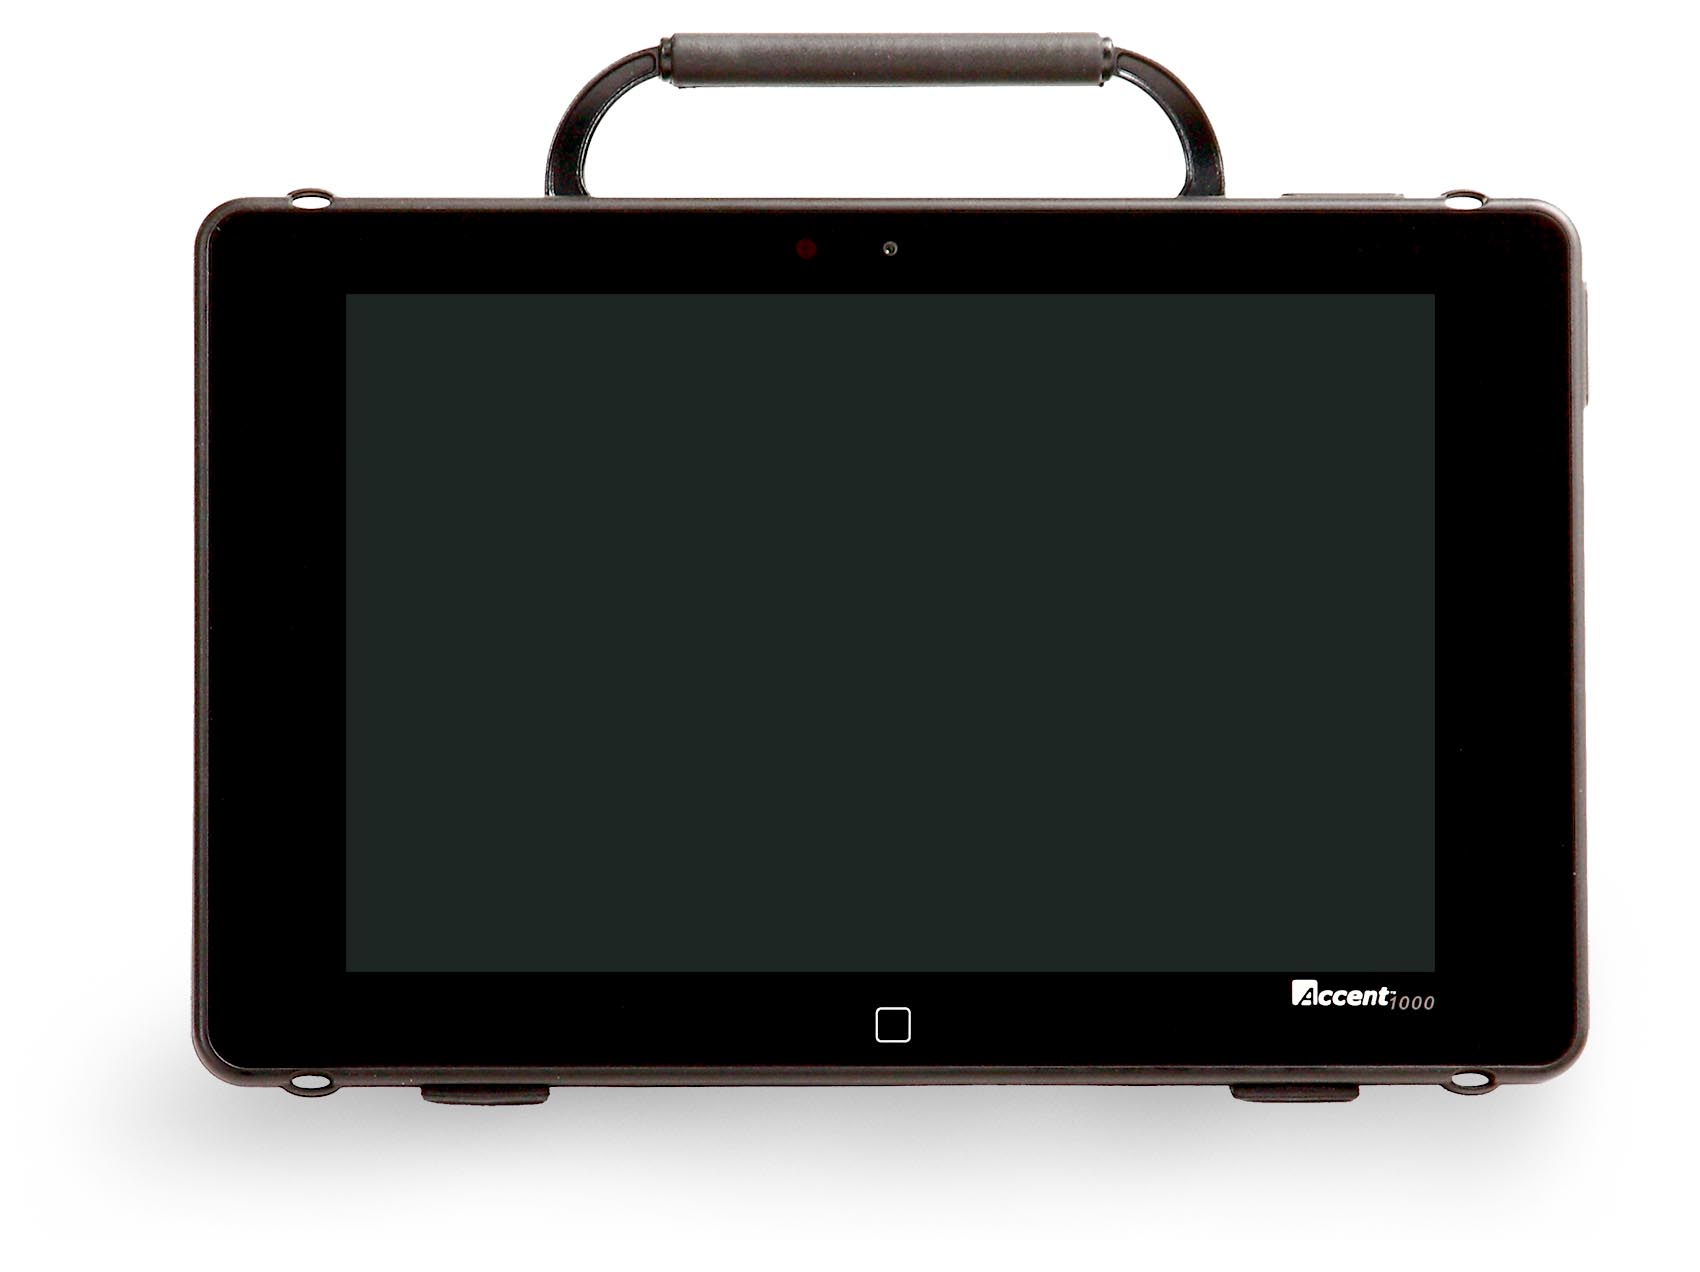 Accent 1000 Overview Display Image